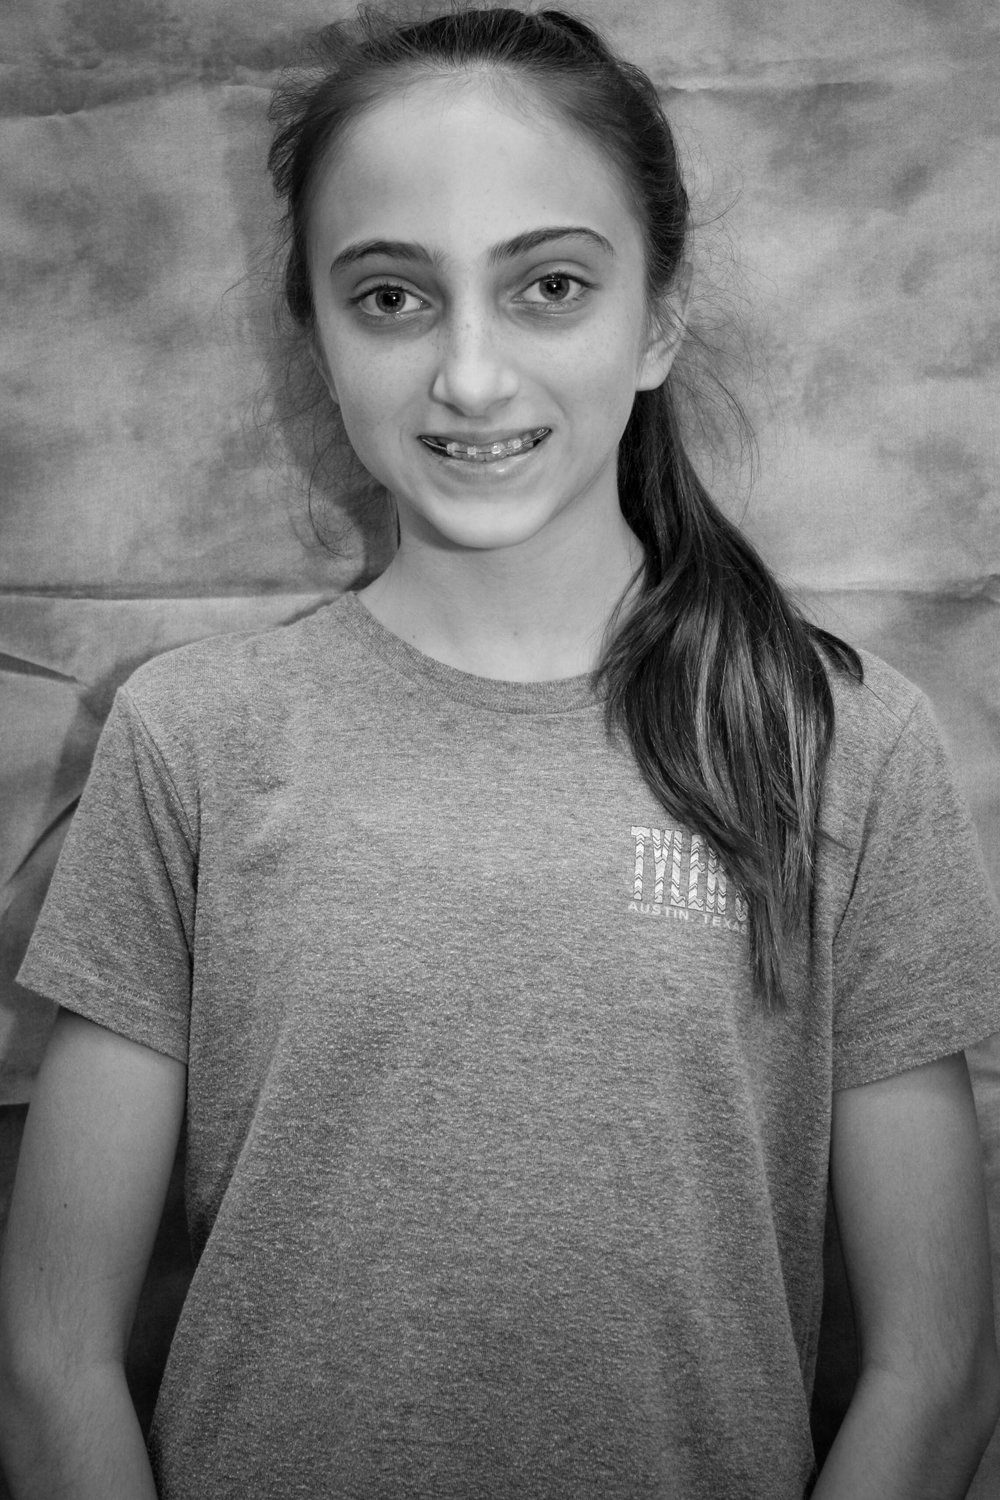 Squirrel, Cook, Candy Dancer - Paige Massengale is a 7th grade dance major. She is so excited to be a part of this years musical. She currently dances at TarryTown dance outside of school, and is in advanced dance here at lamar. In addition to her dancing activities she is also a part of the Lamar choir.